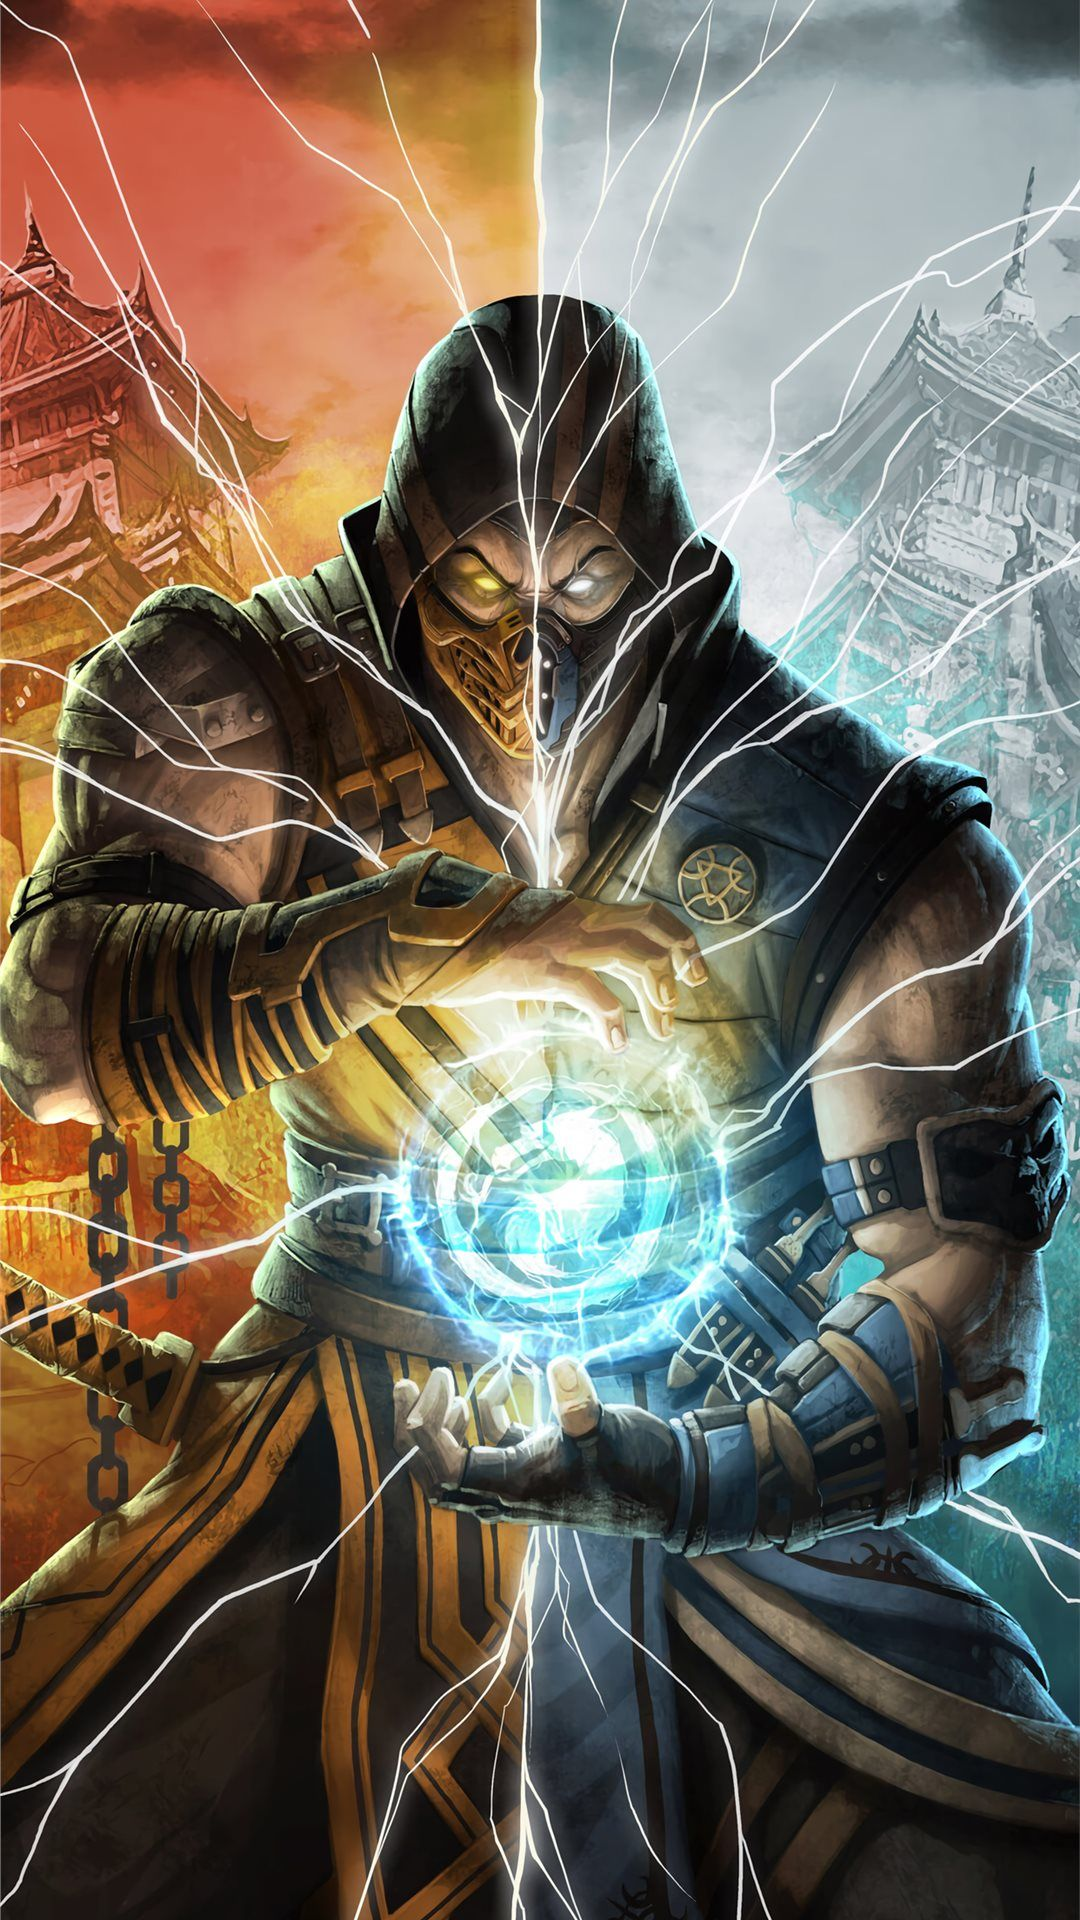 2019 Mortal Kombat 11 Iphone 8 Wallpapers Wojownicy Tapety Konie